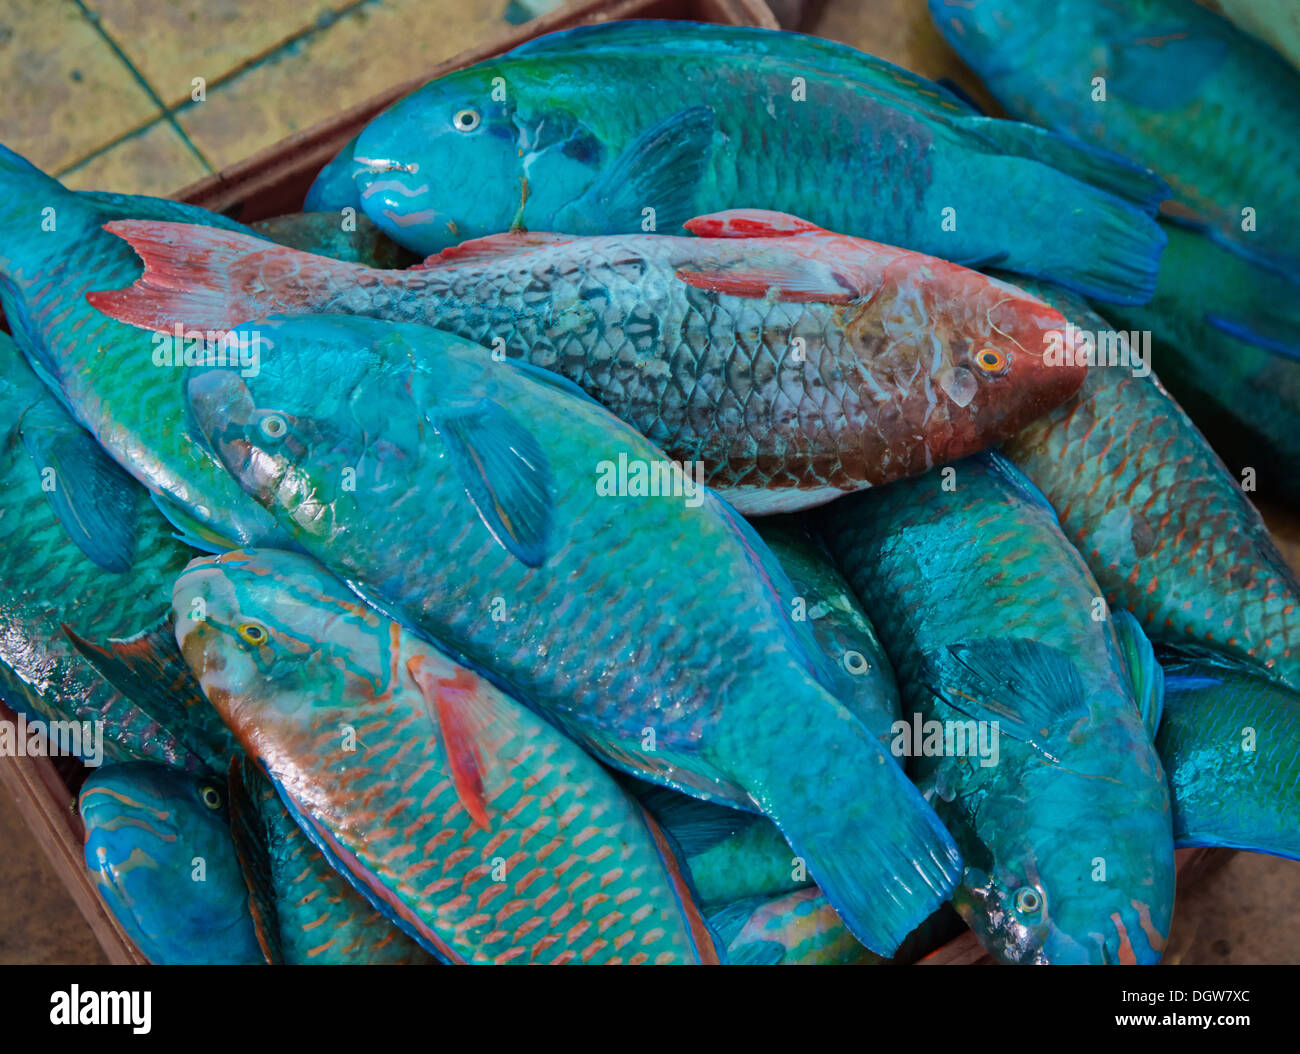 Stock exchange shares prices in kenya frudgereport363 for Fish stocking prices